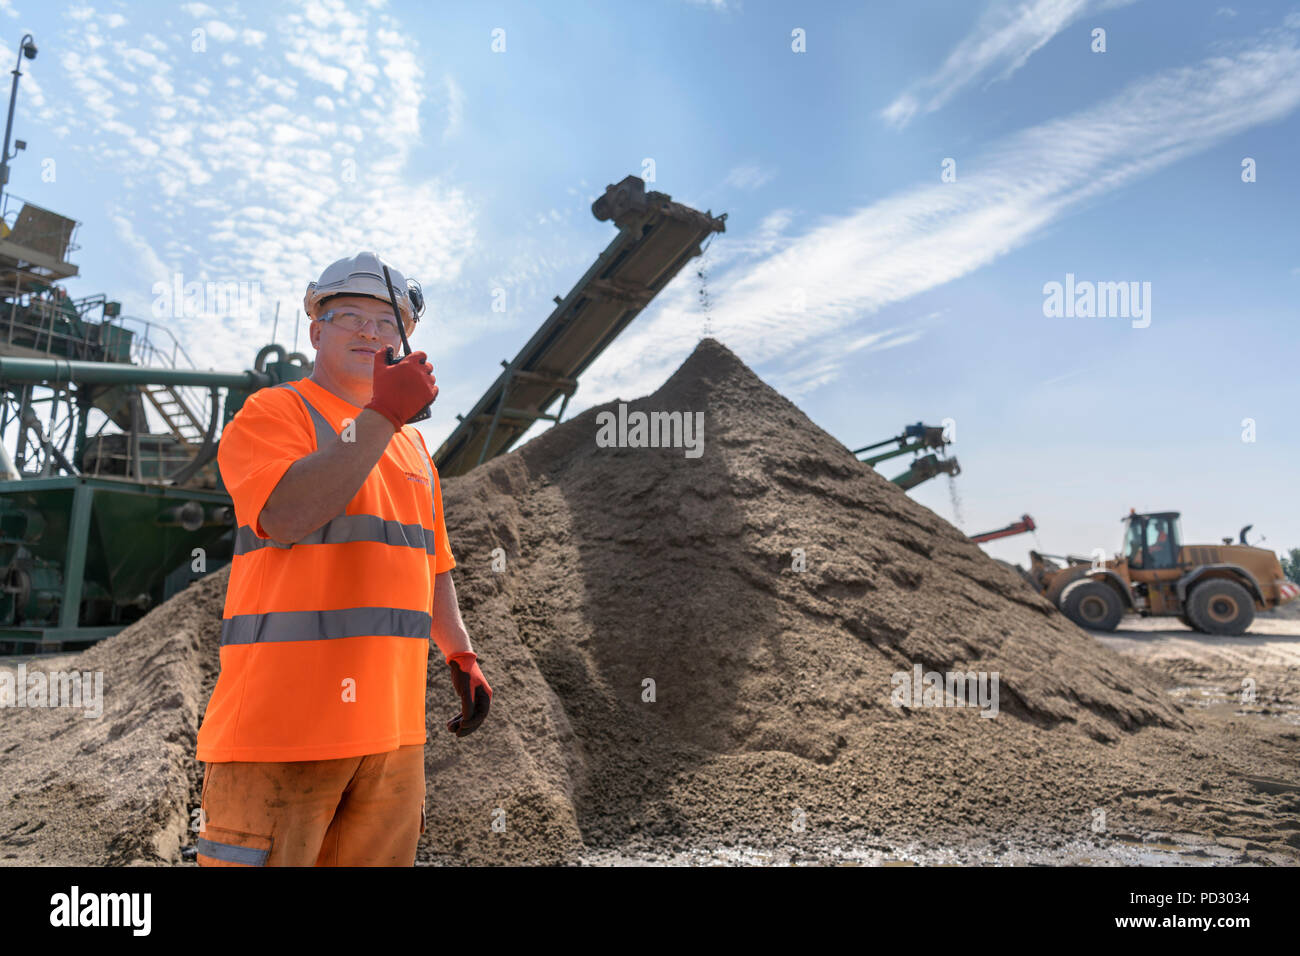 Worker talking on walkie talkie with crusher and concrete screening machine in concrete recycling site - Stock Image